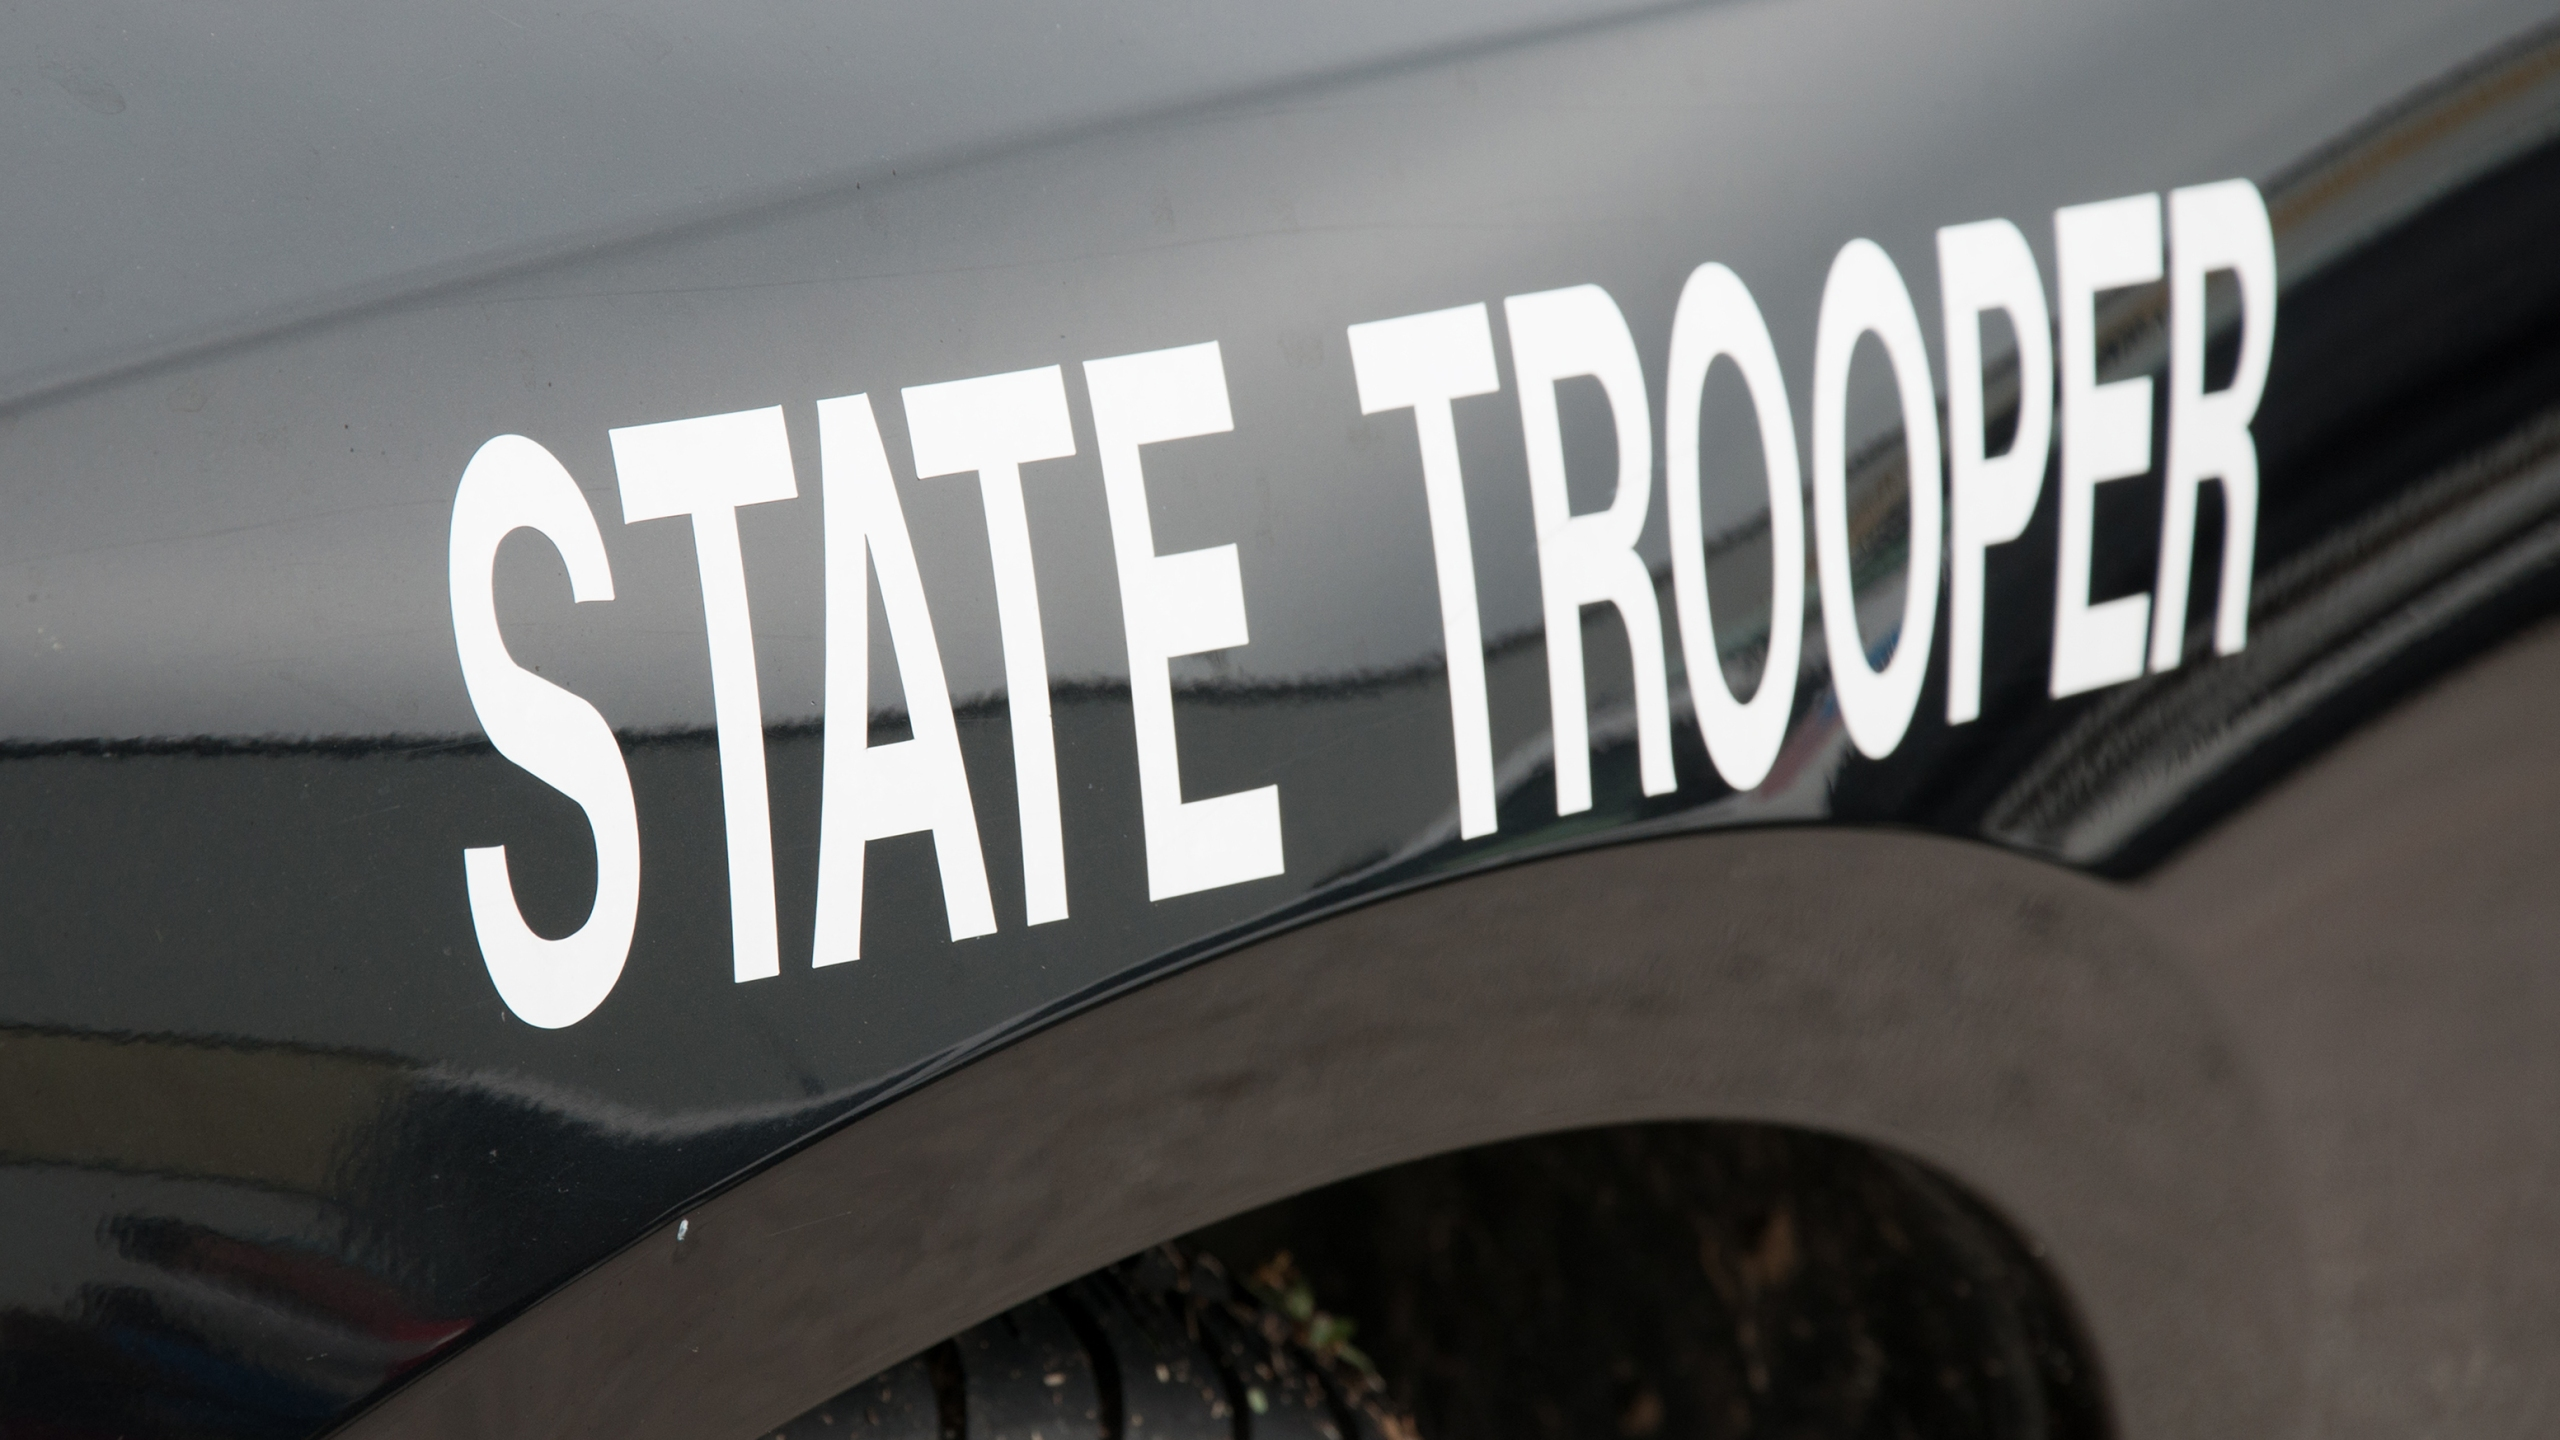 state trooper car_269221